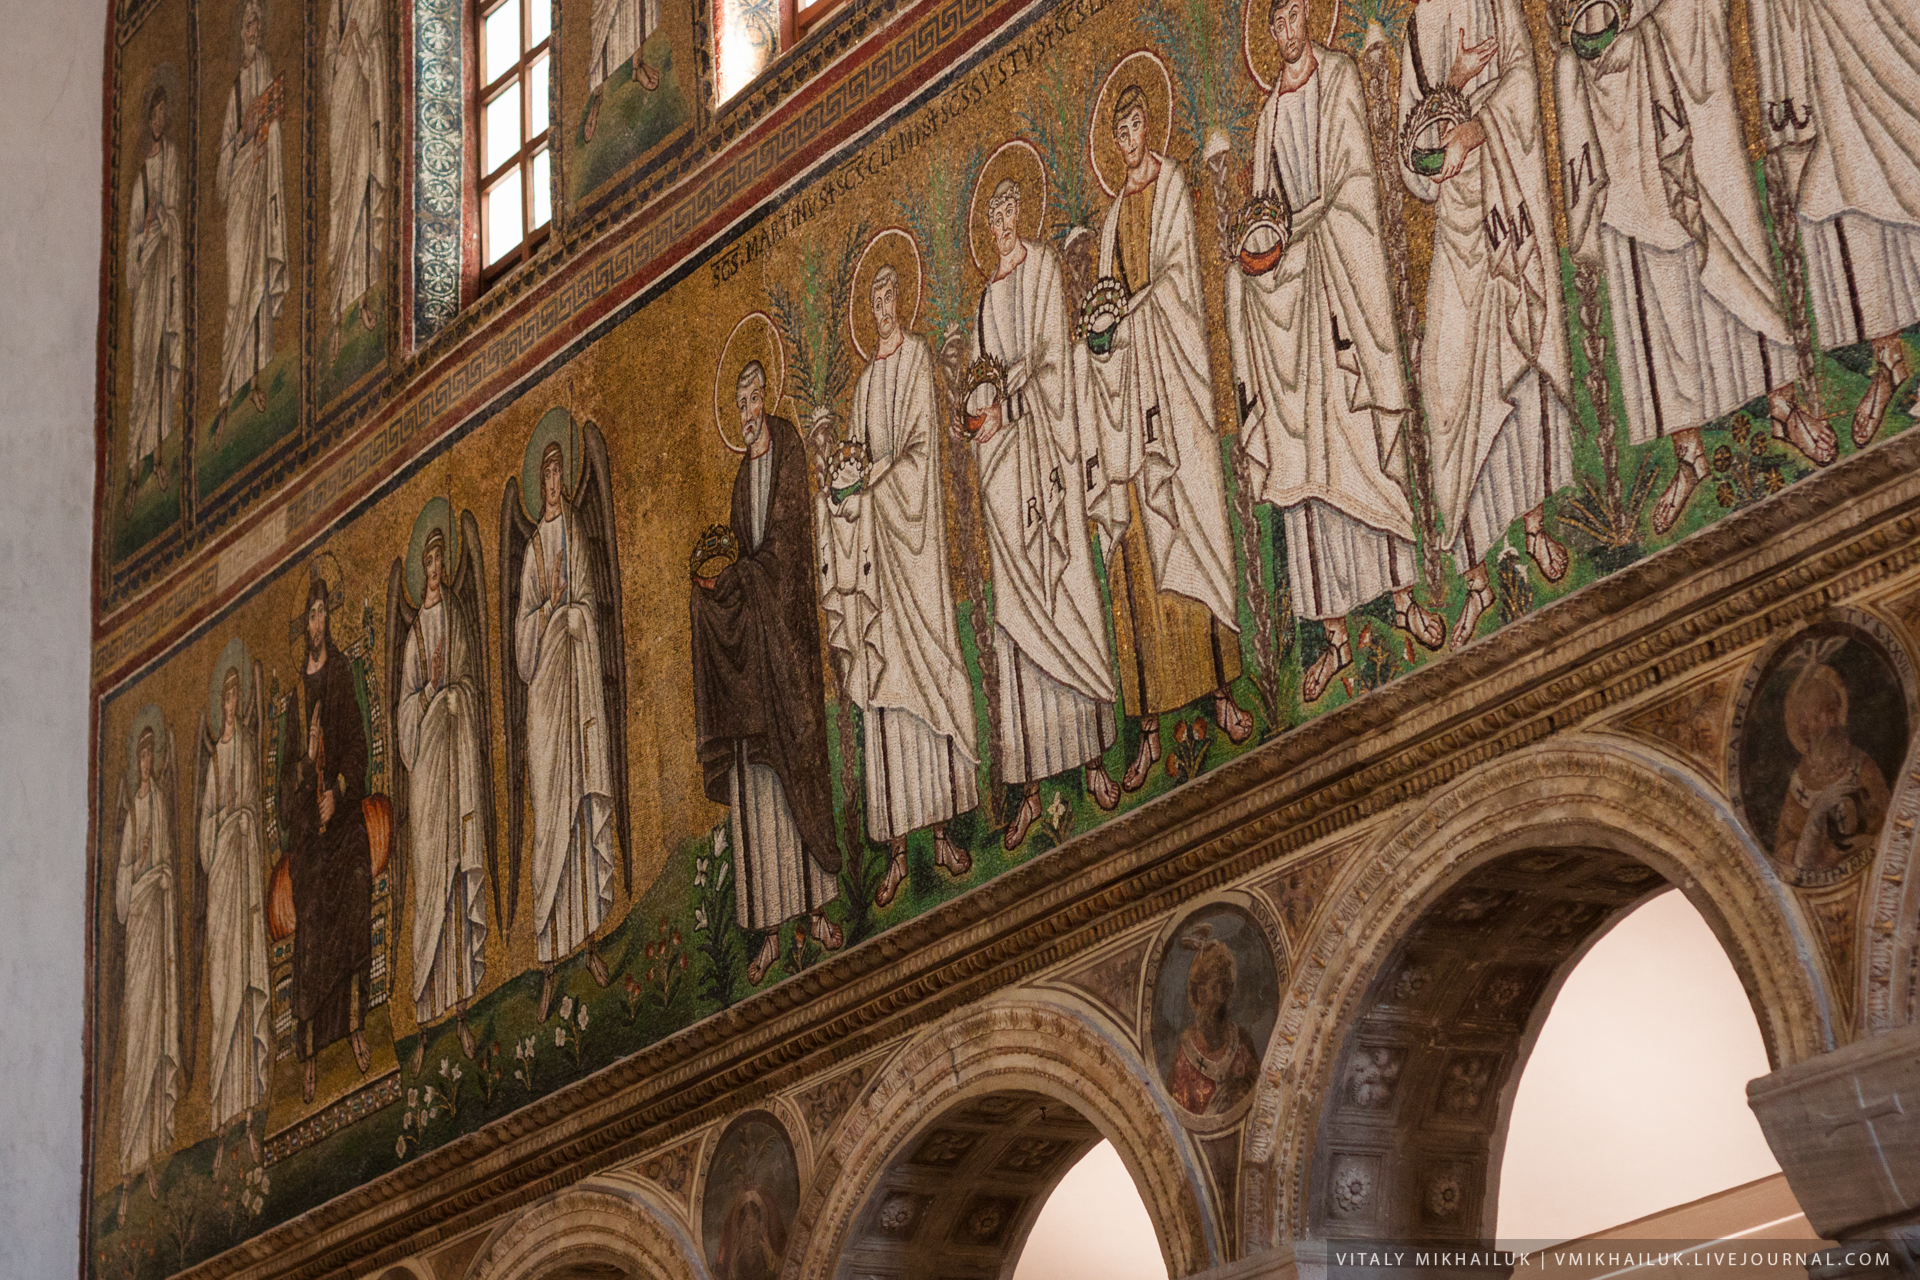 Ravenna: Mosaics, Dante and San Vitale Ravenna, which, here, Dante, time, San Vitale, Ravenna, church, Ravenna, Roman, can, Florence, Galla, stands, city, empire, city, city, place